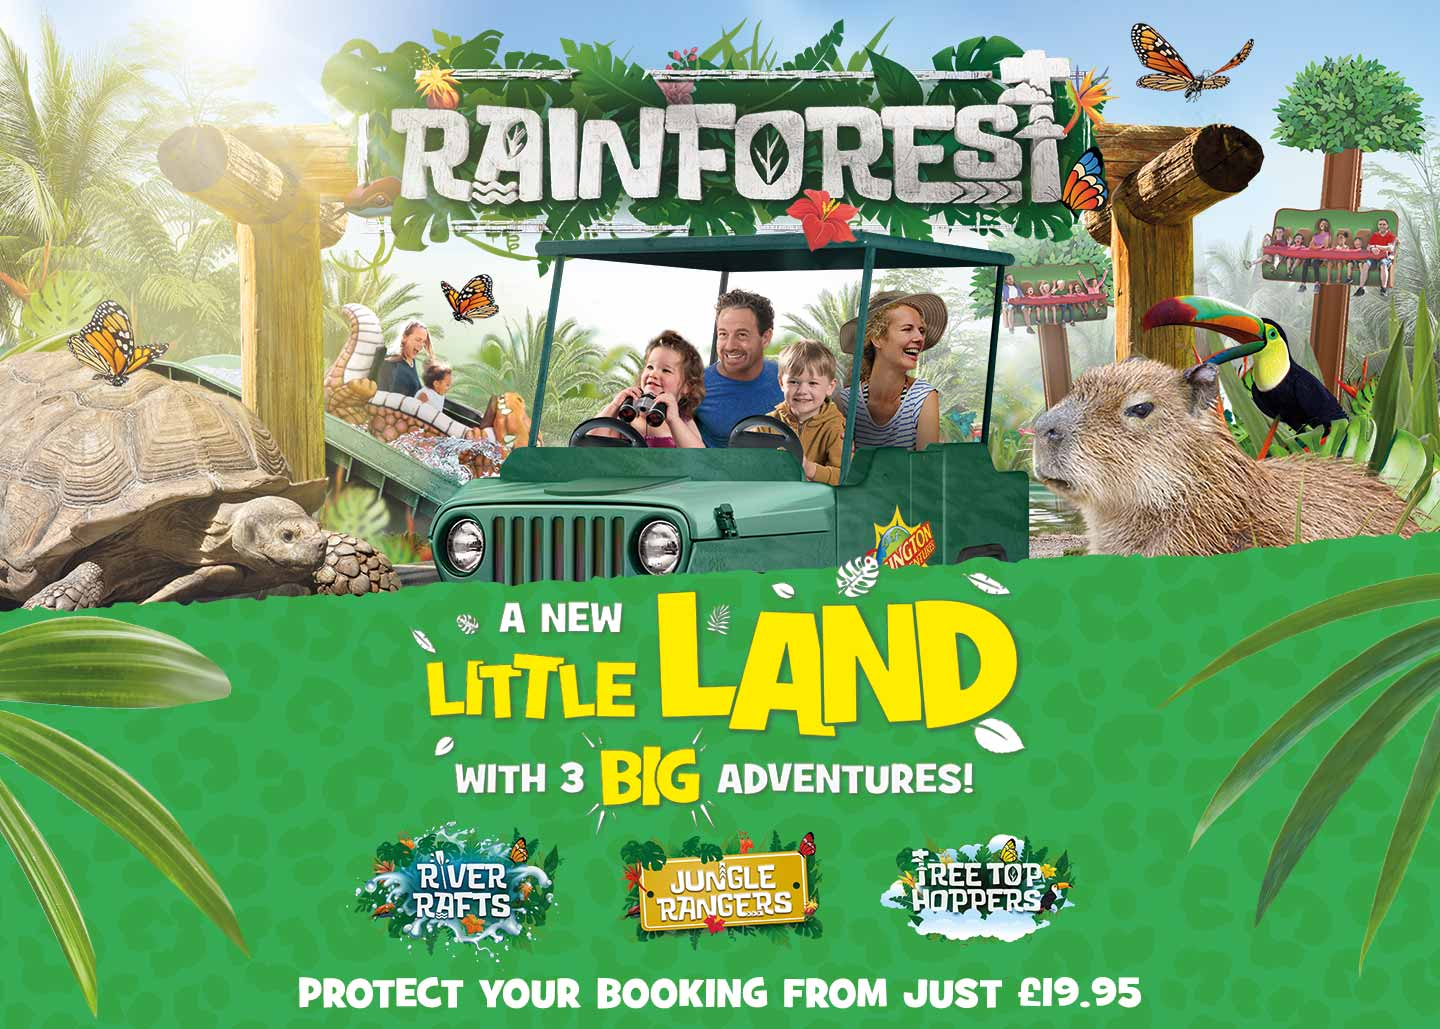 Brand new Rainforest land at Chessington World of Adventures Resort